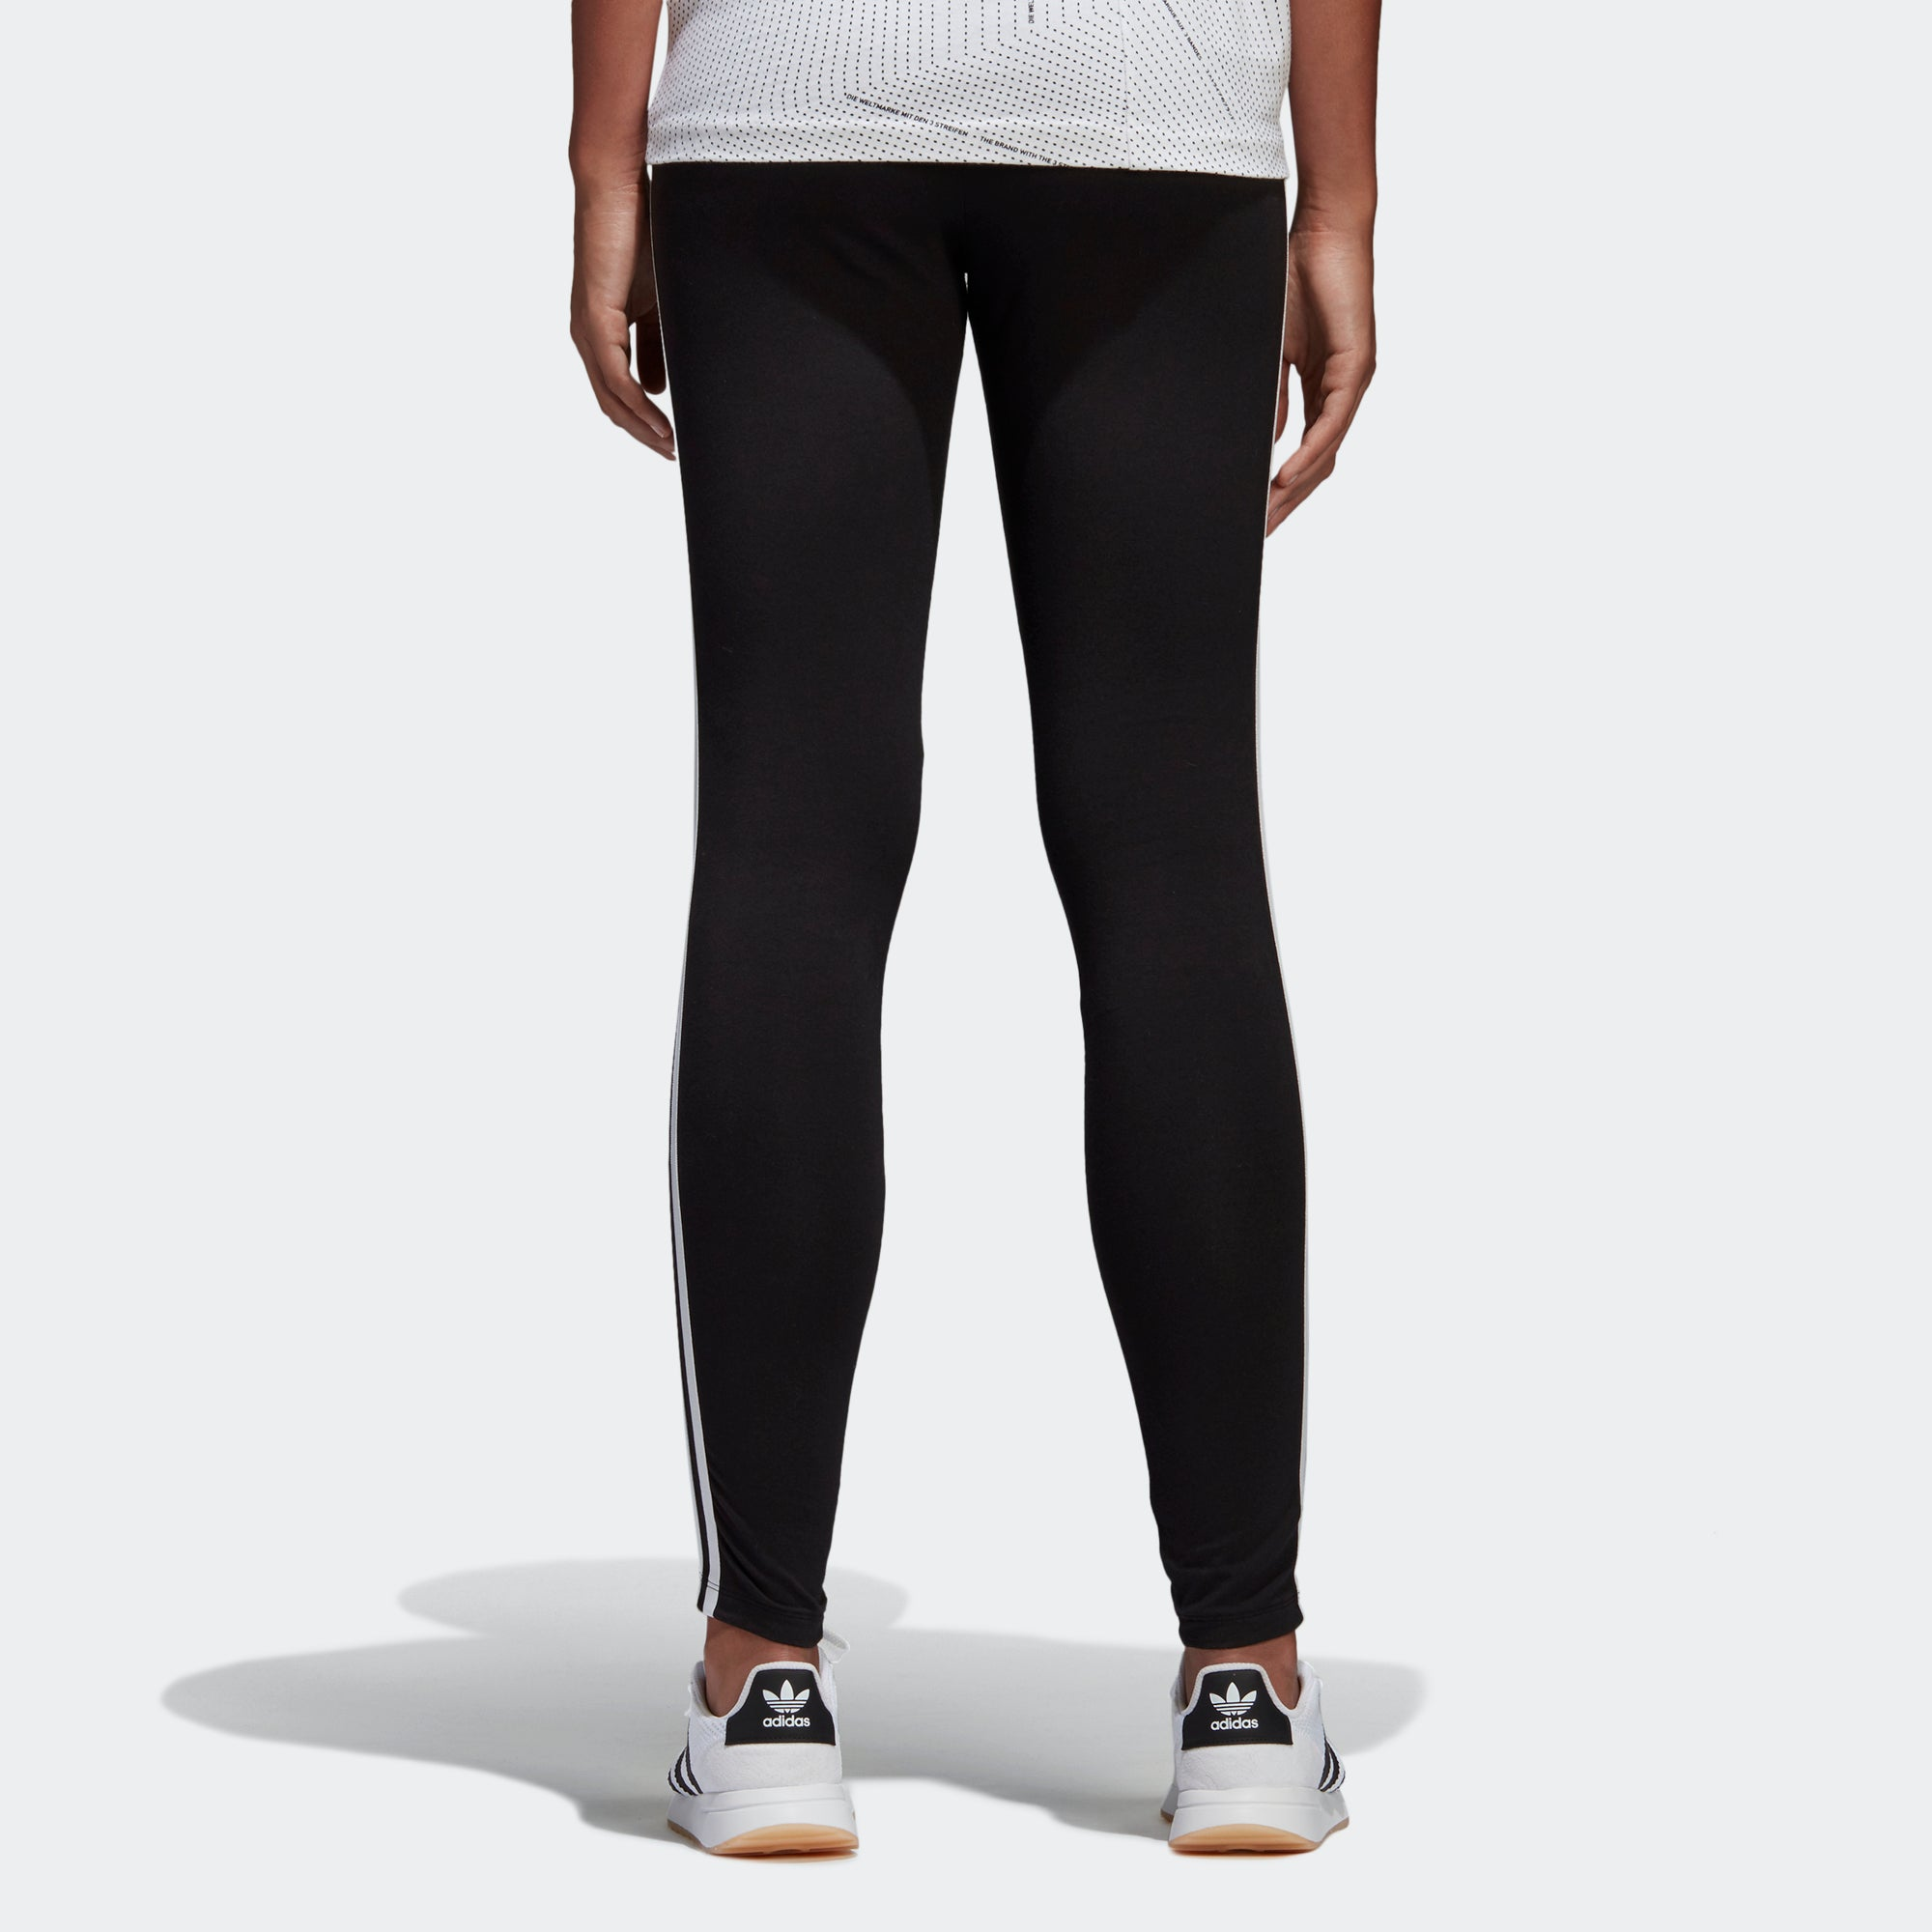 cb839af6187a Women s adidas Originals 3-Stripes Leggings Black  White. 1